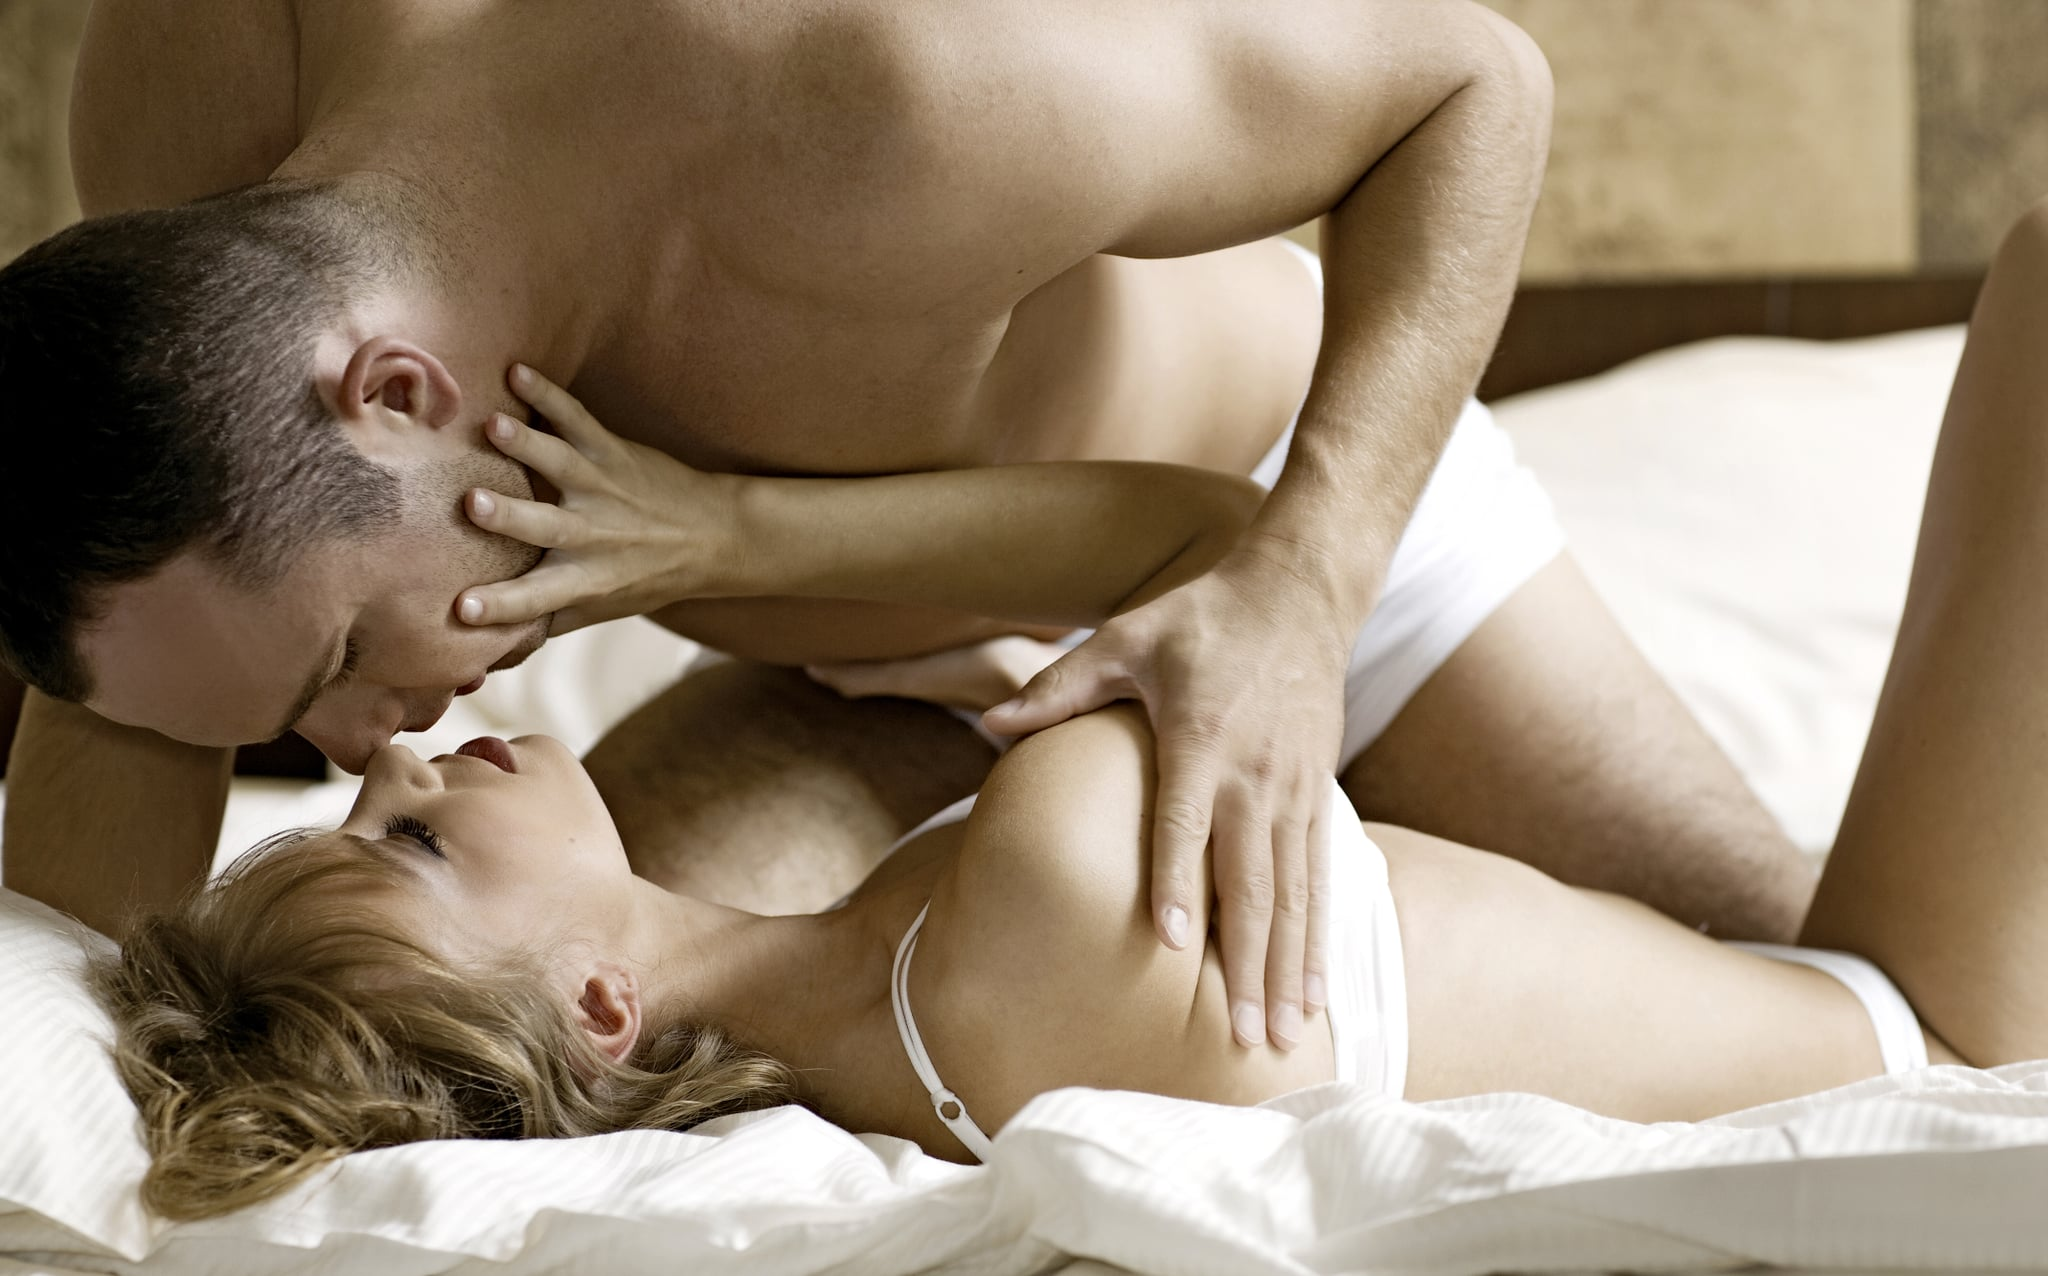 Porn girls in vulnerable positions